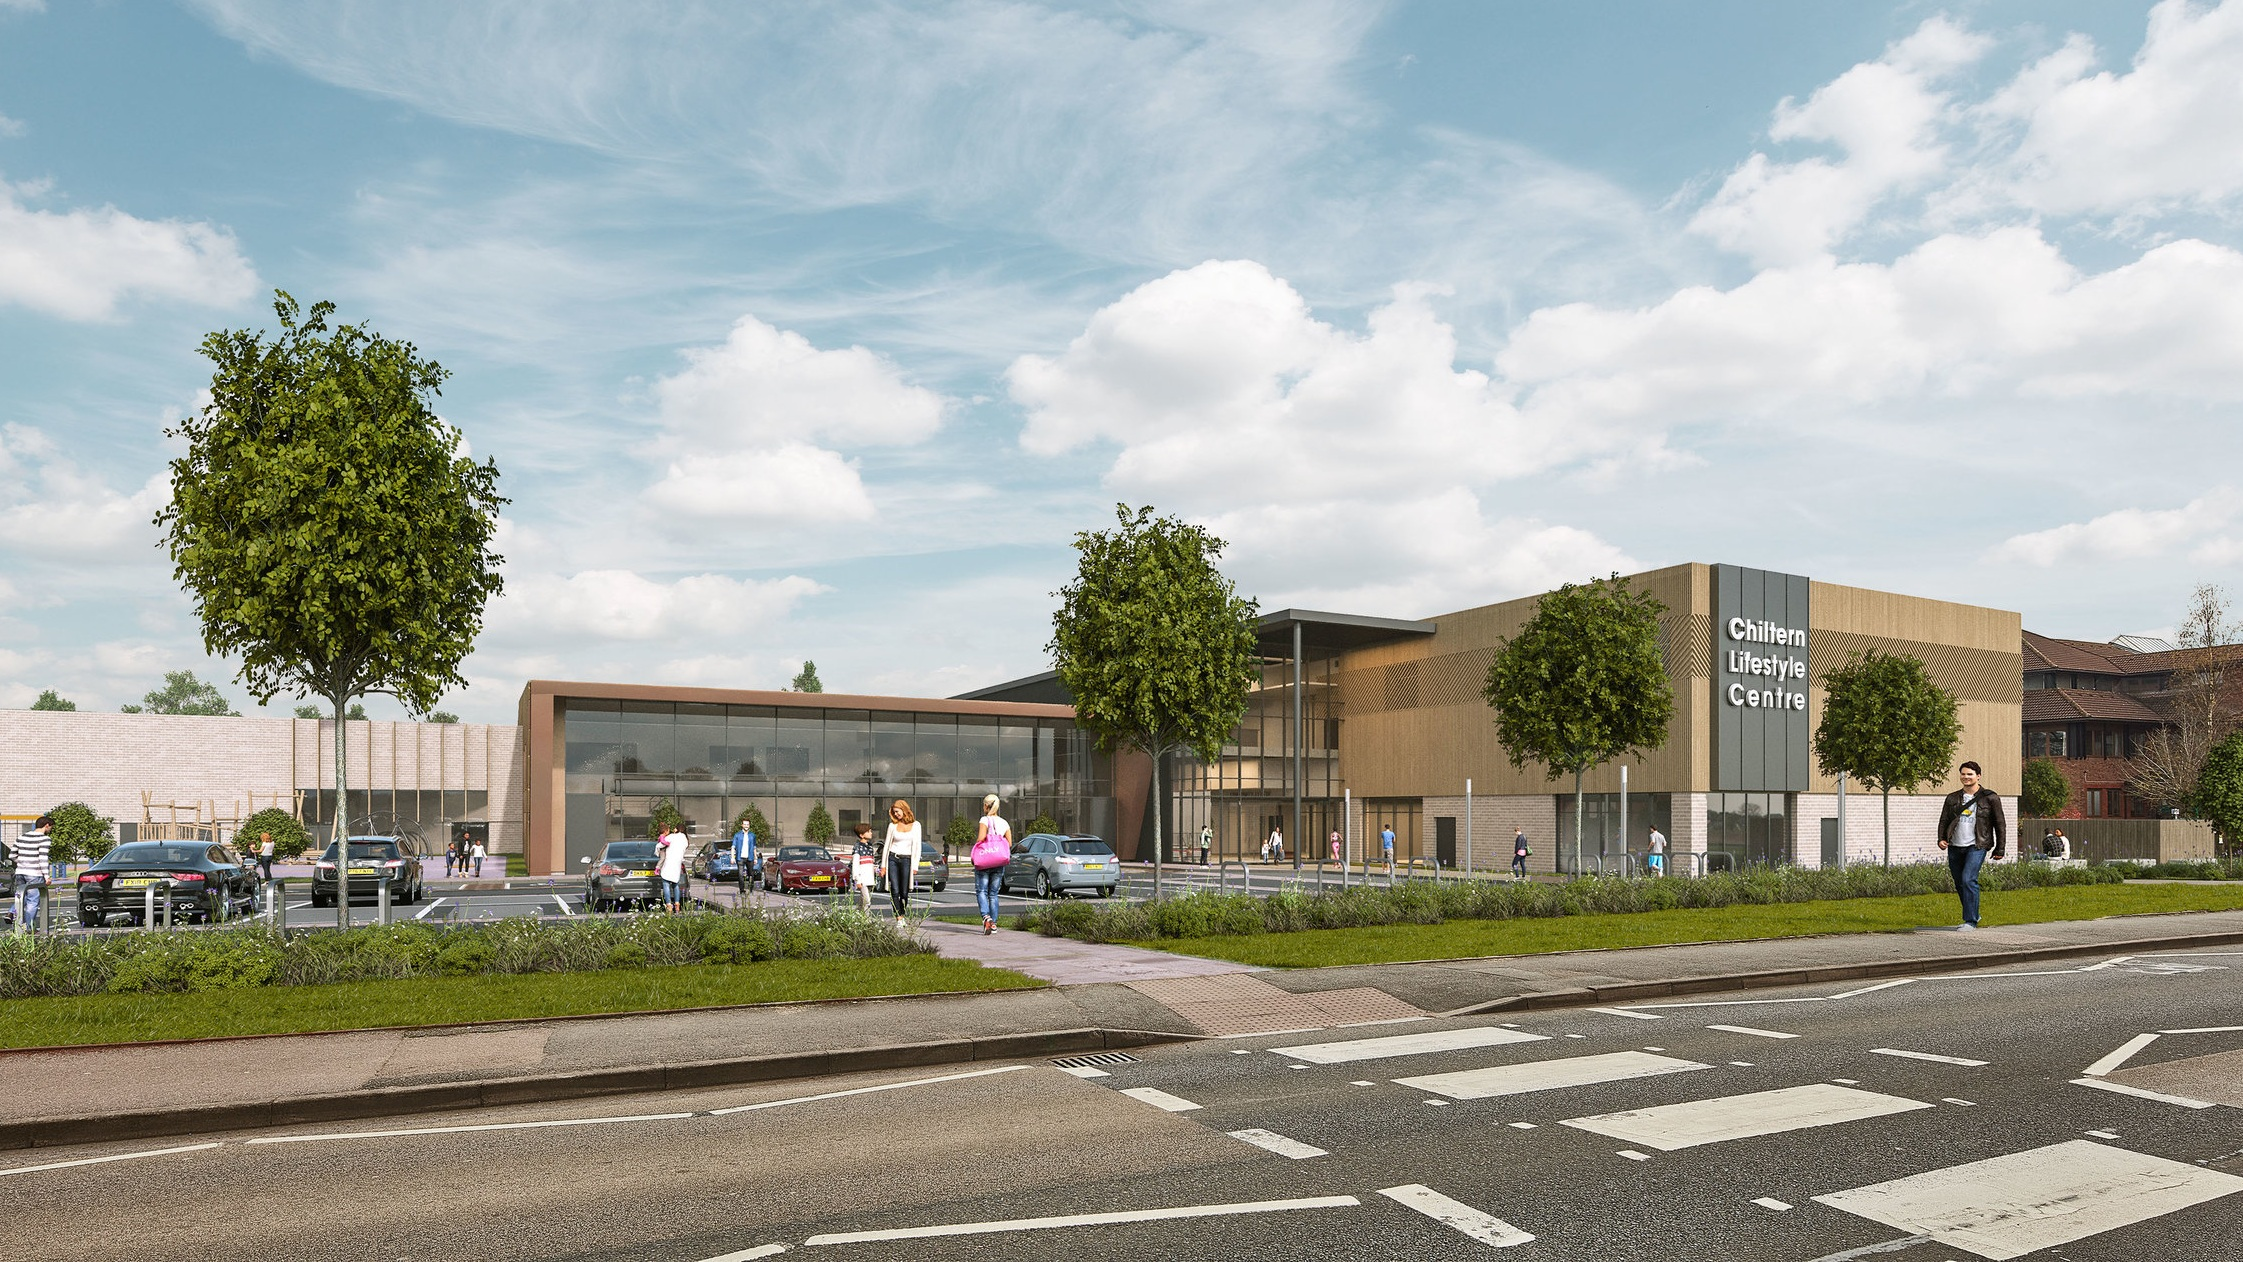 View the latest images of the  Chiltern Lifestyle Centre